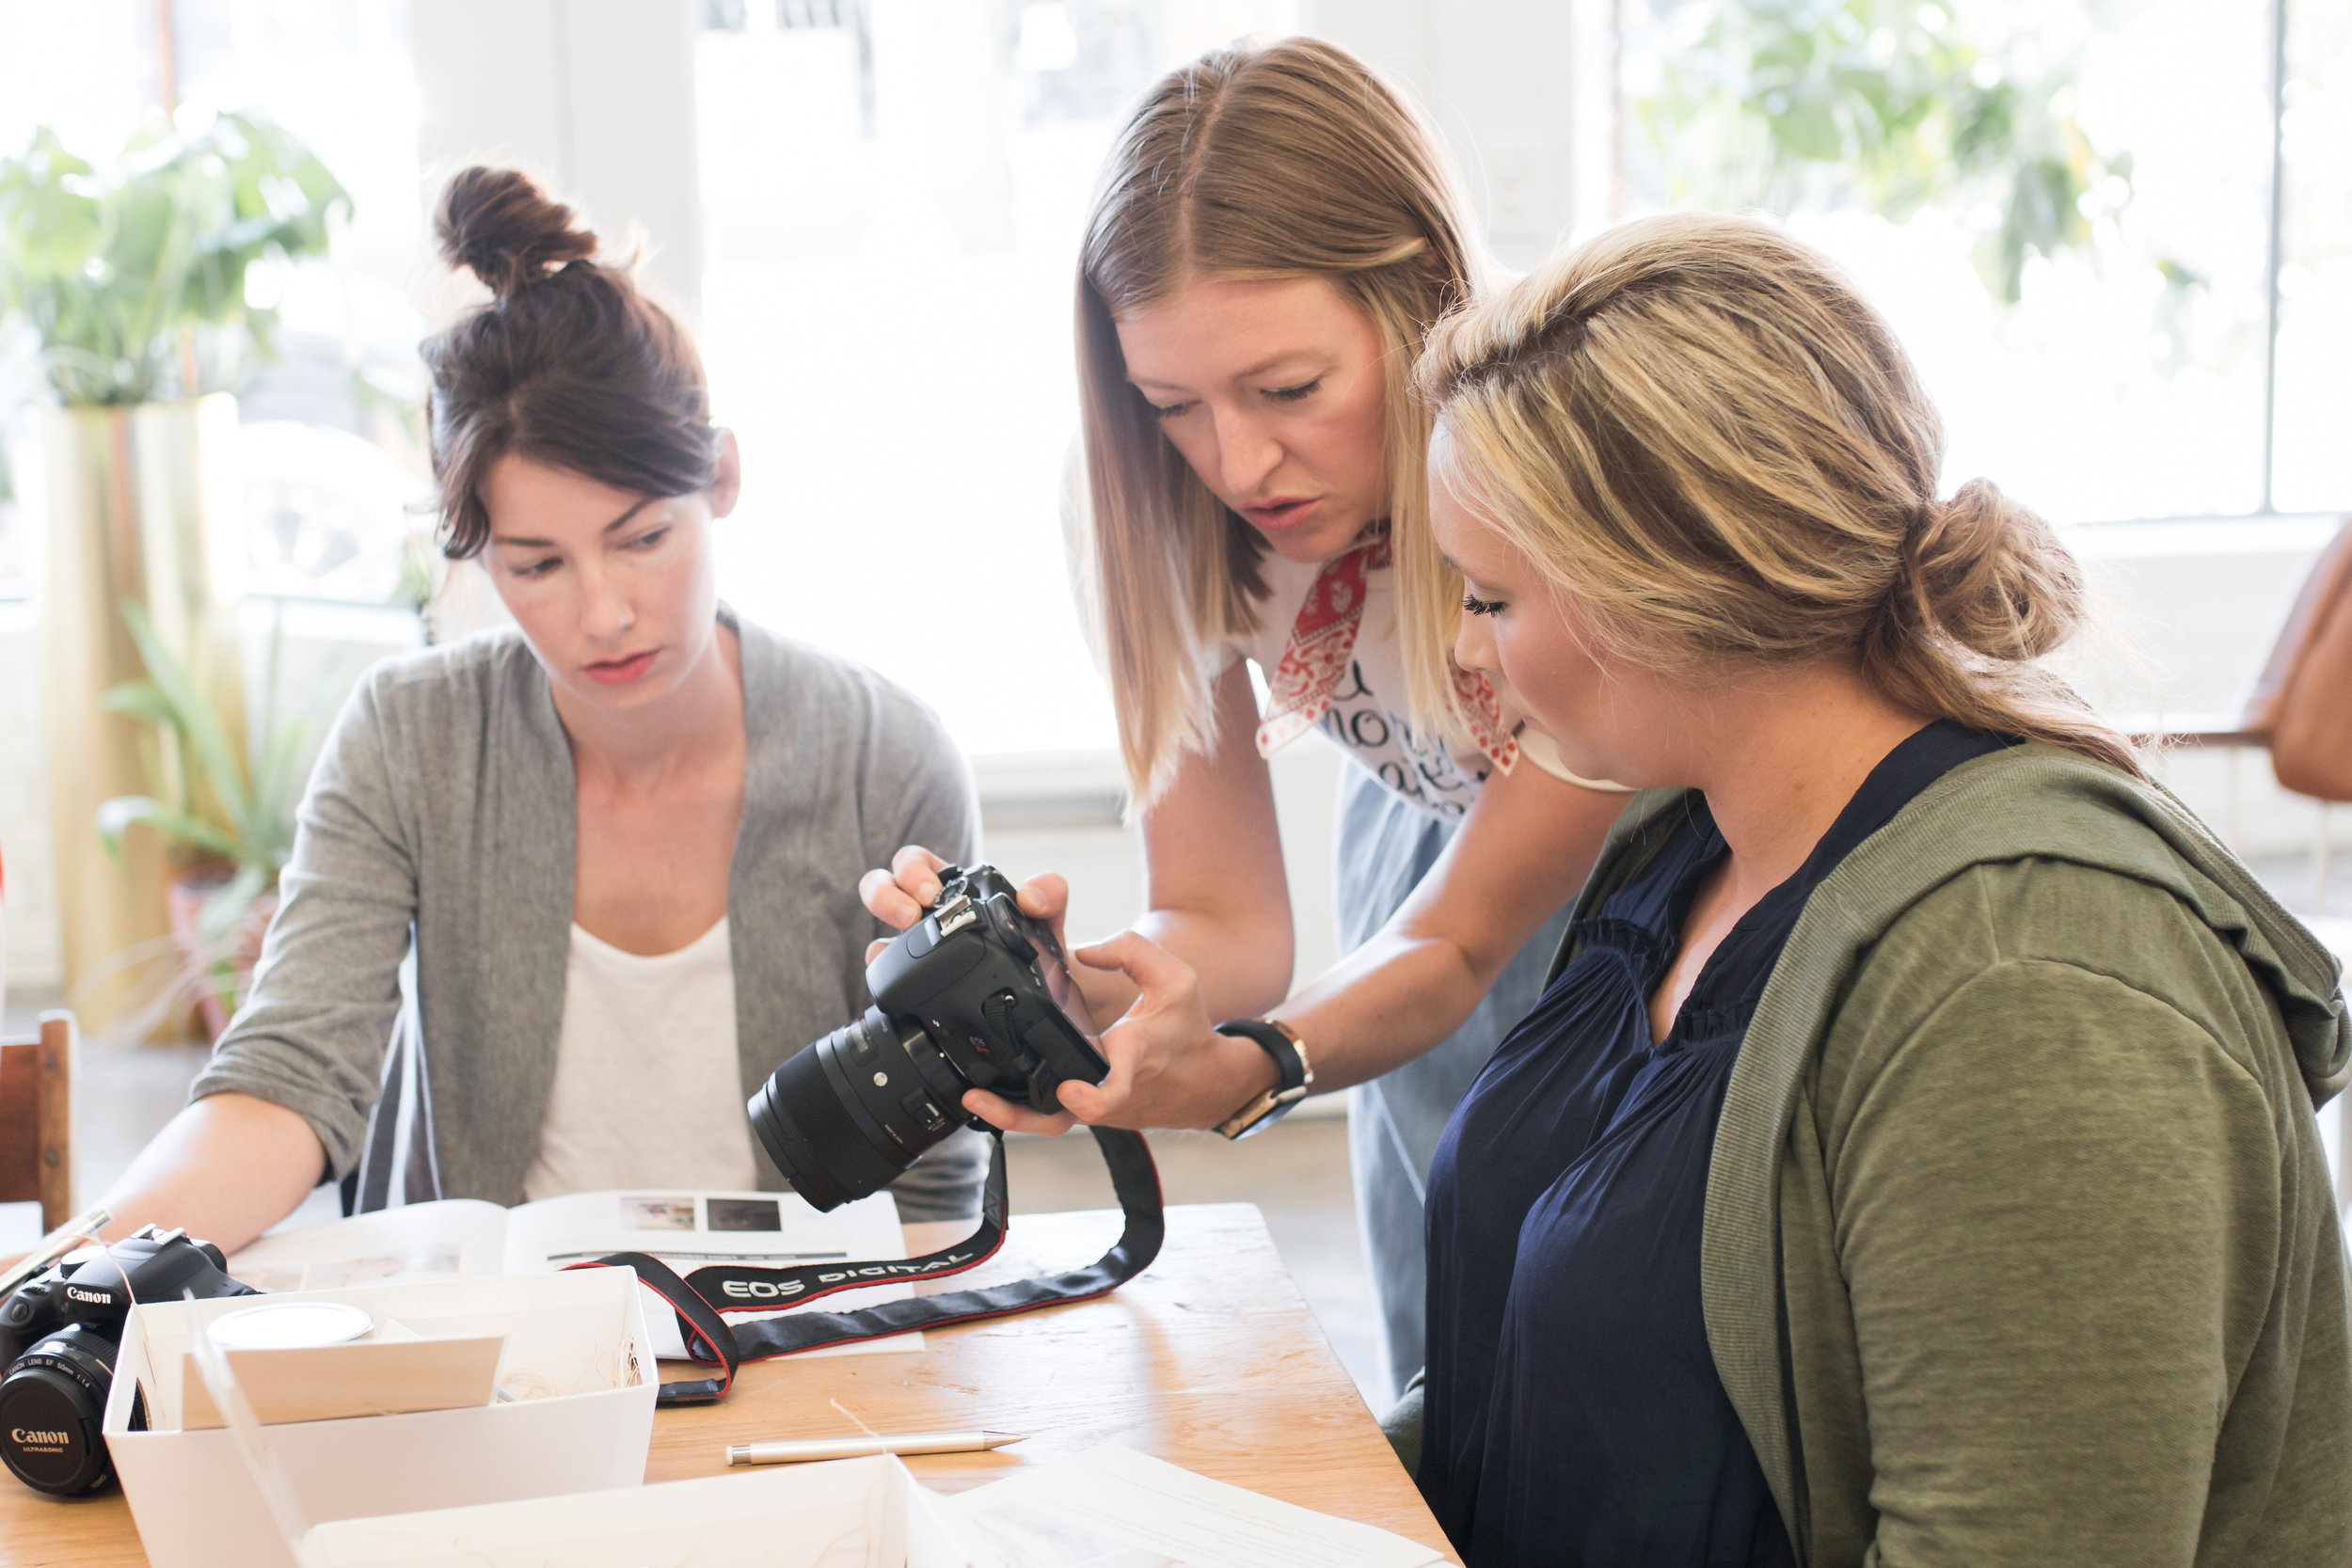 Kacey helping attendees find shutter speed function at  Kindred Photography Workshop  Tulsa, Image by  Tina Lynn Photography